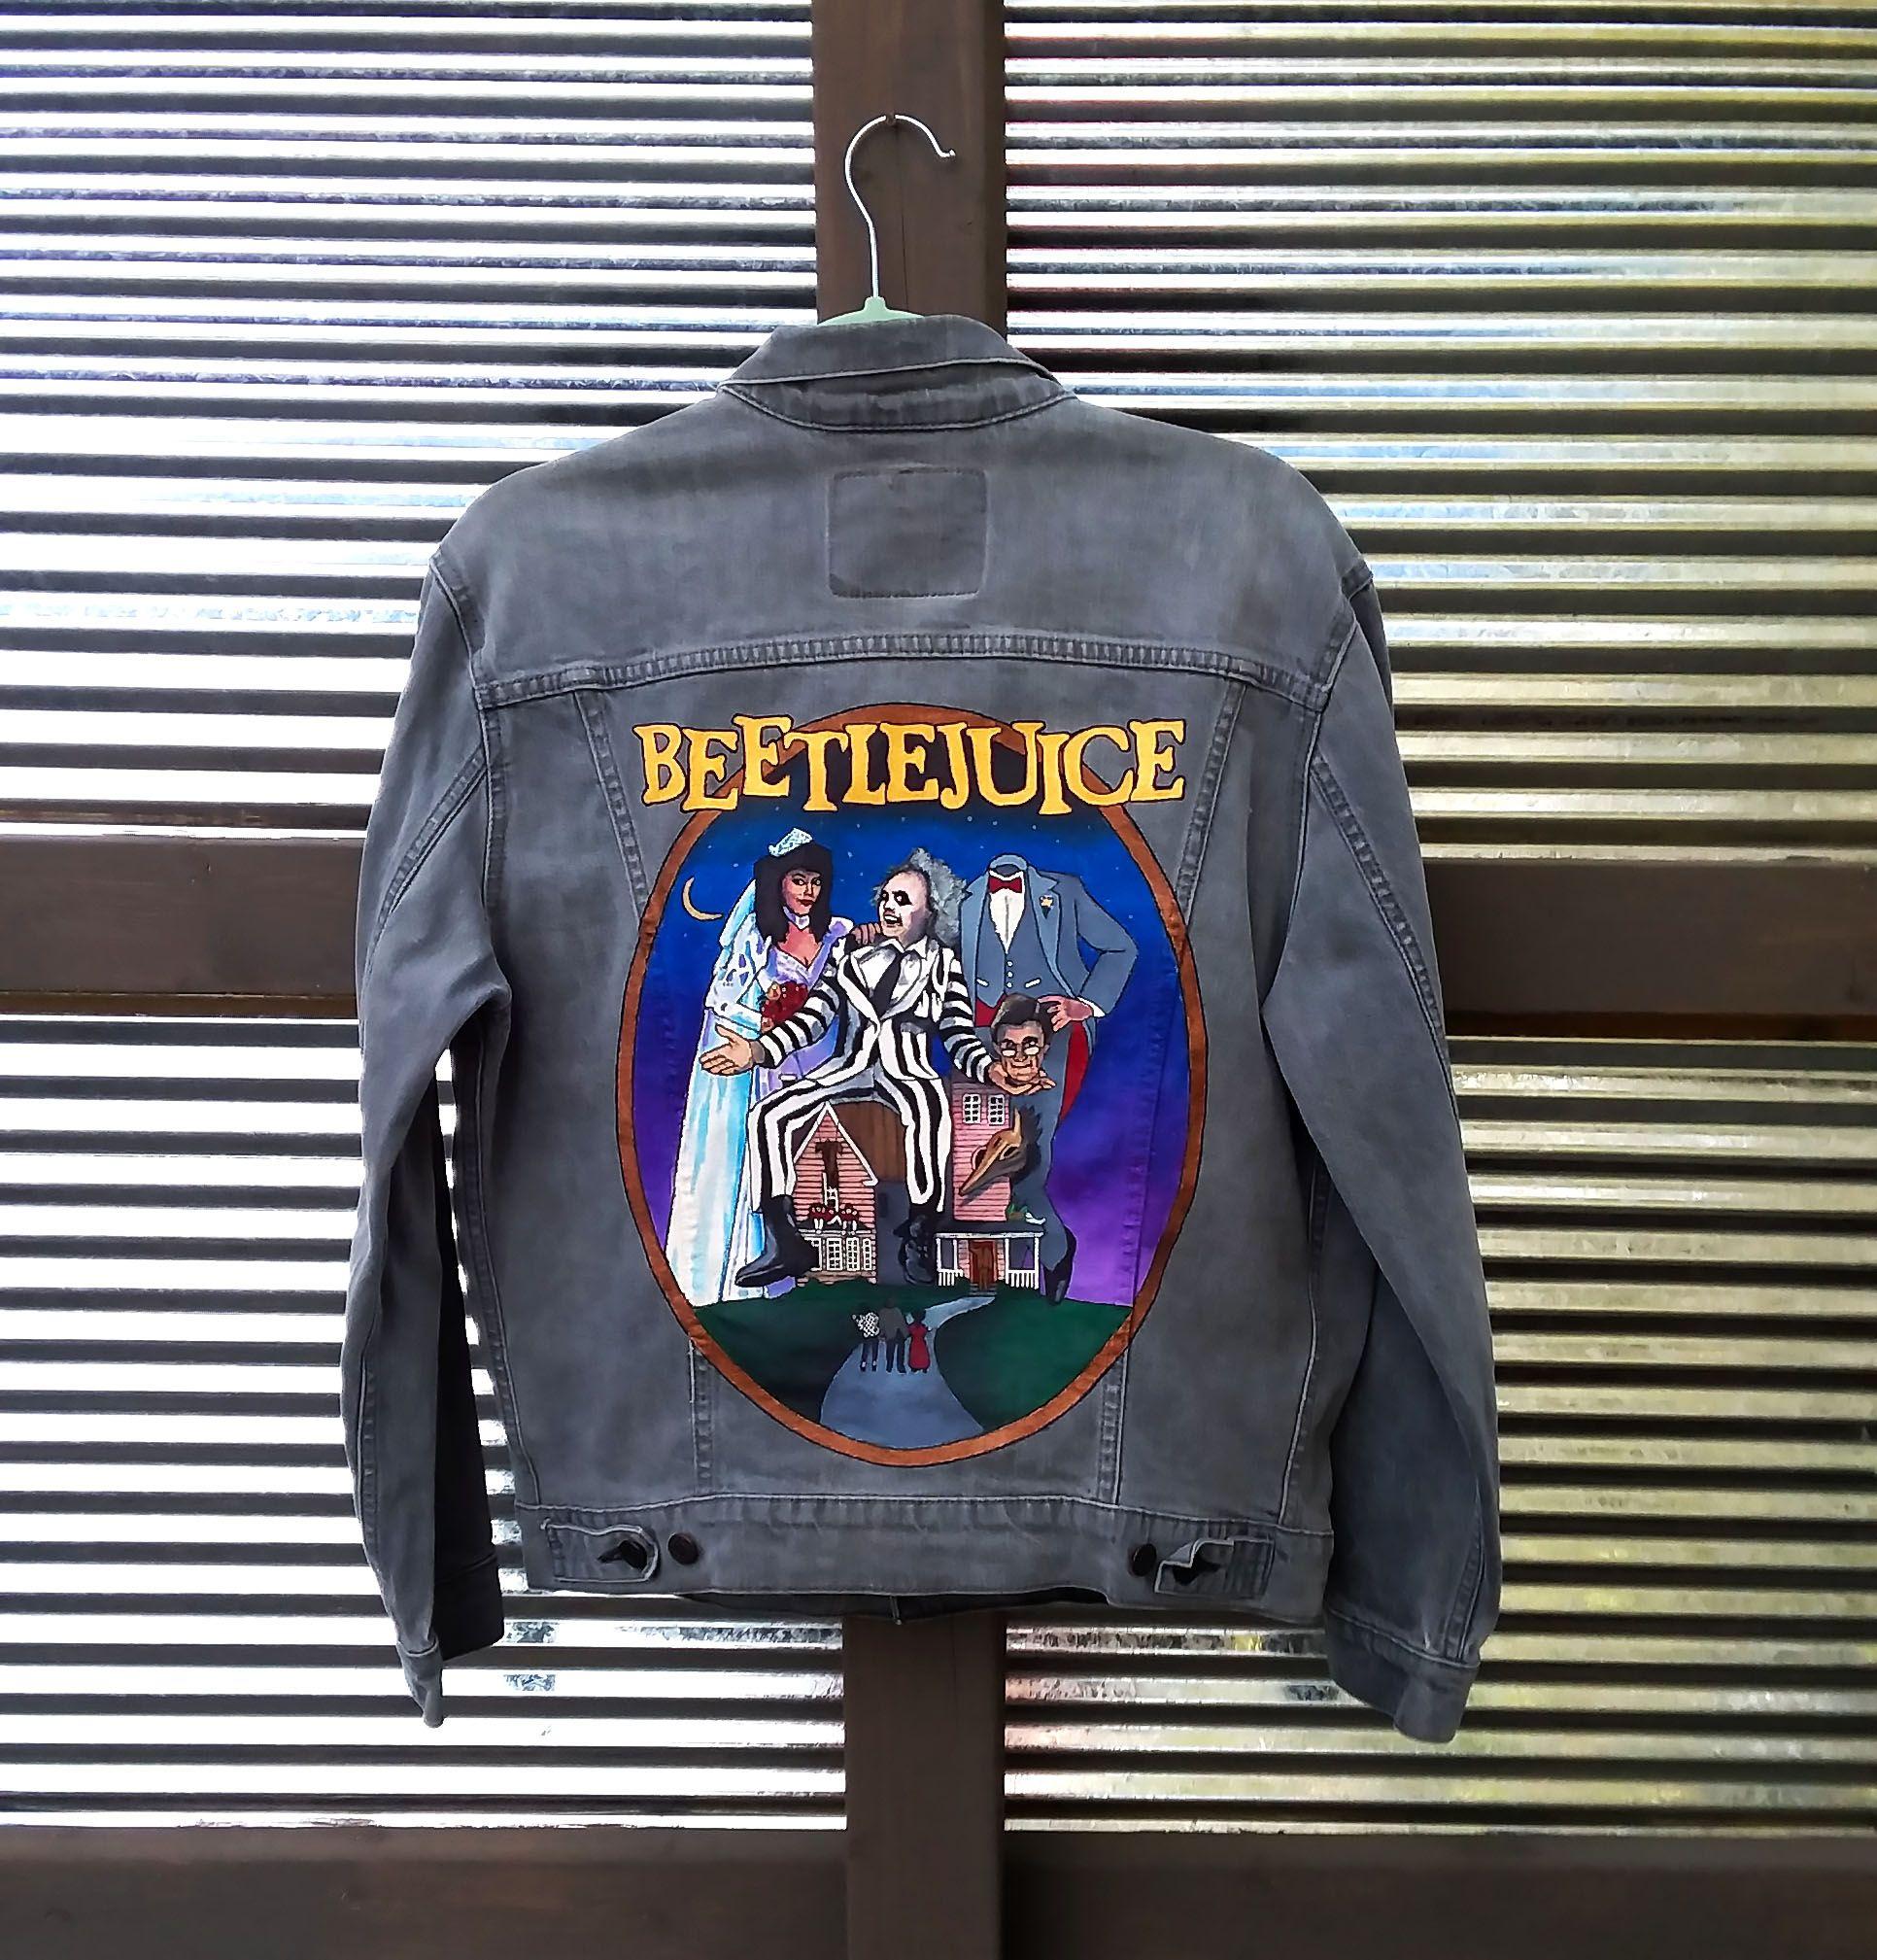 Hand Painted Beetlejuice Poster On The Back Of A Gray Levi S Jean Jacket By Bleudoor On Instagram Painted Jacket Painted Denim Jacket Embellished Jacket [ 2017 x 1932 Pixel ]